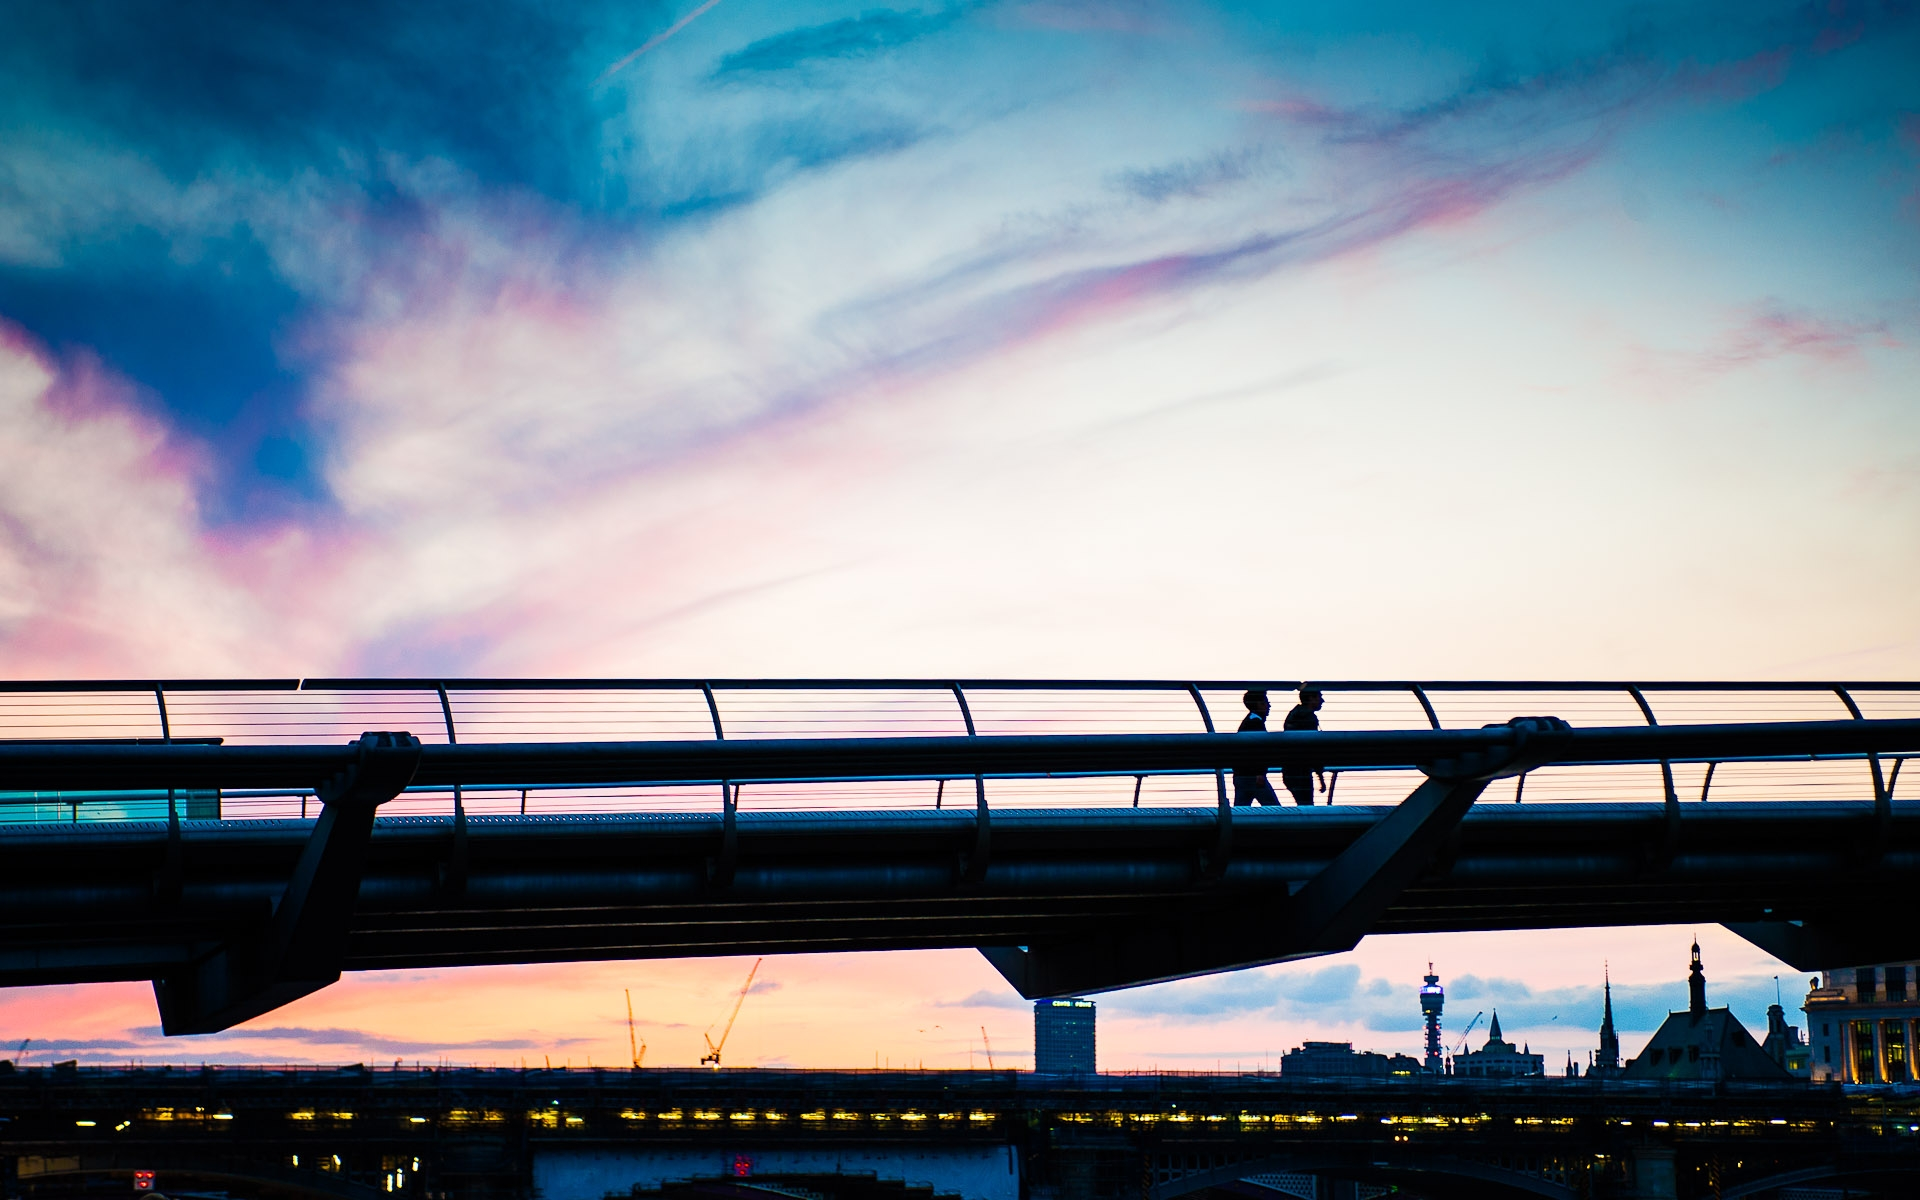 people in silhouette waling across london millenium bridge at disk against colourful sky